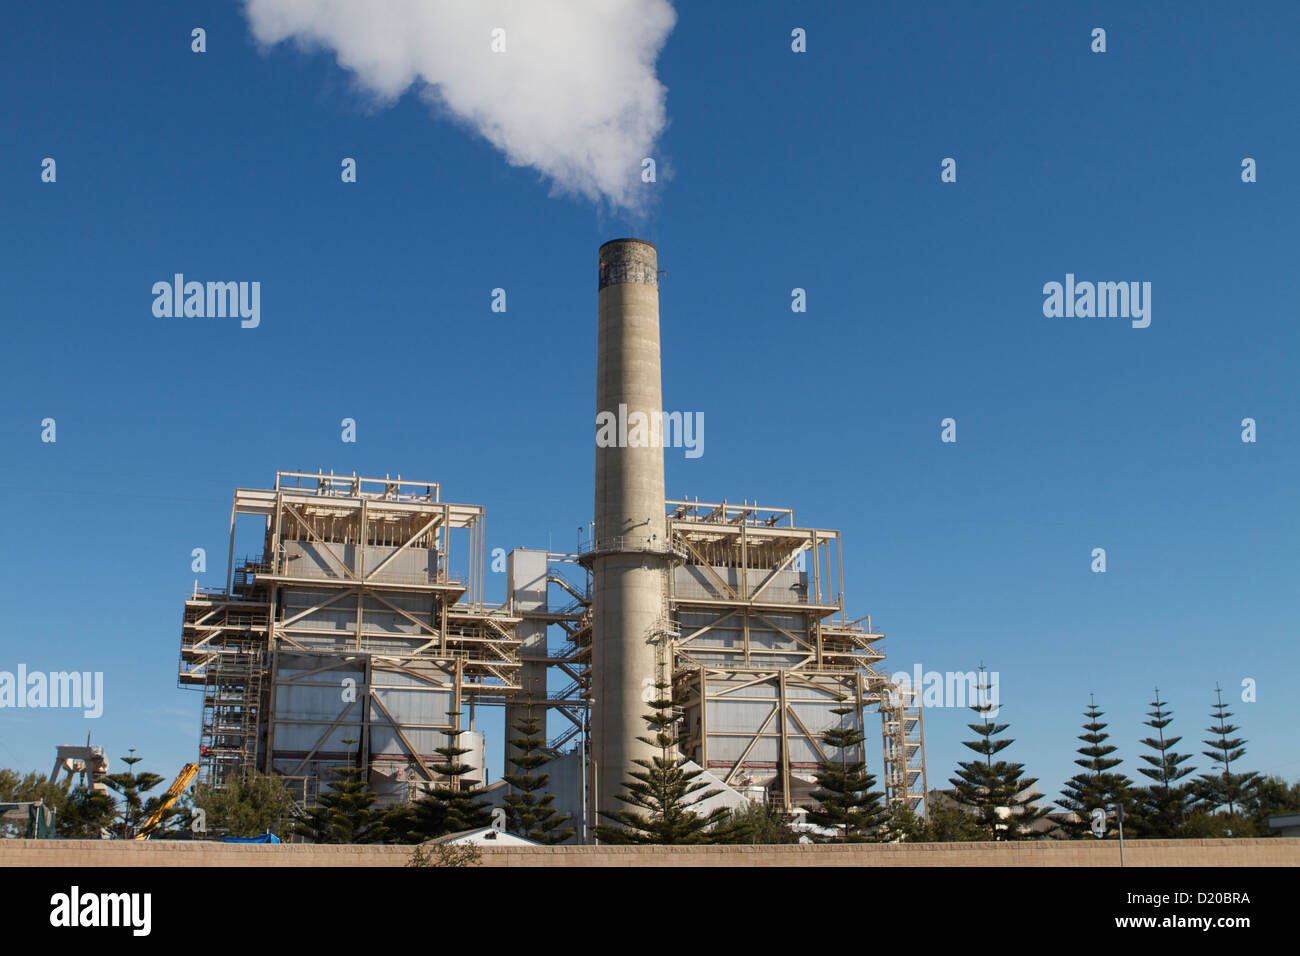 AES Huntington Beach Generating power Station with steam rising from one of its stacks - Stock Image